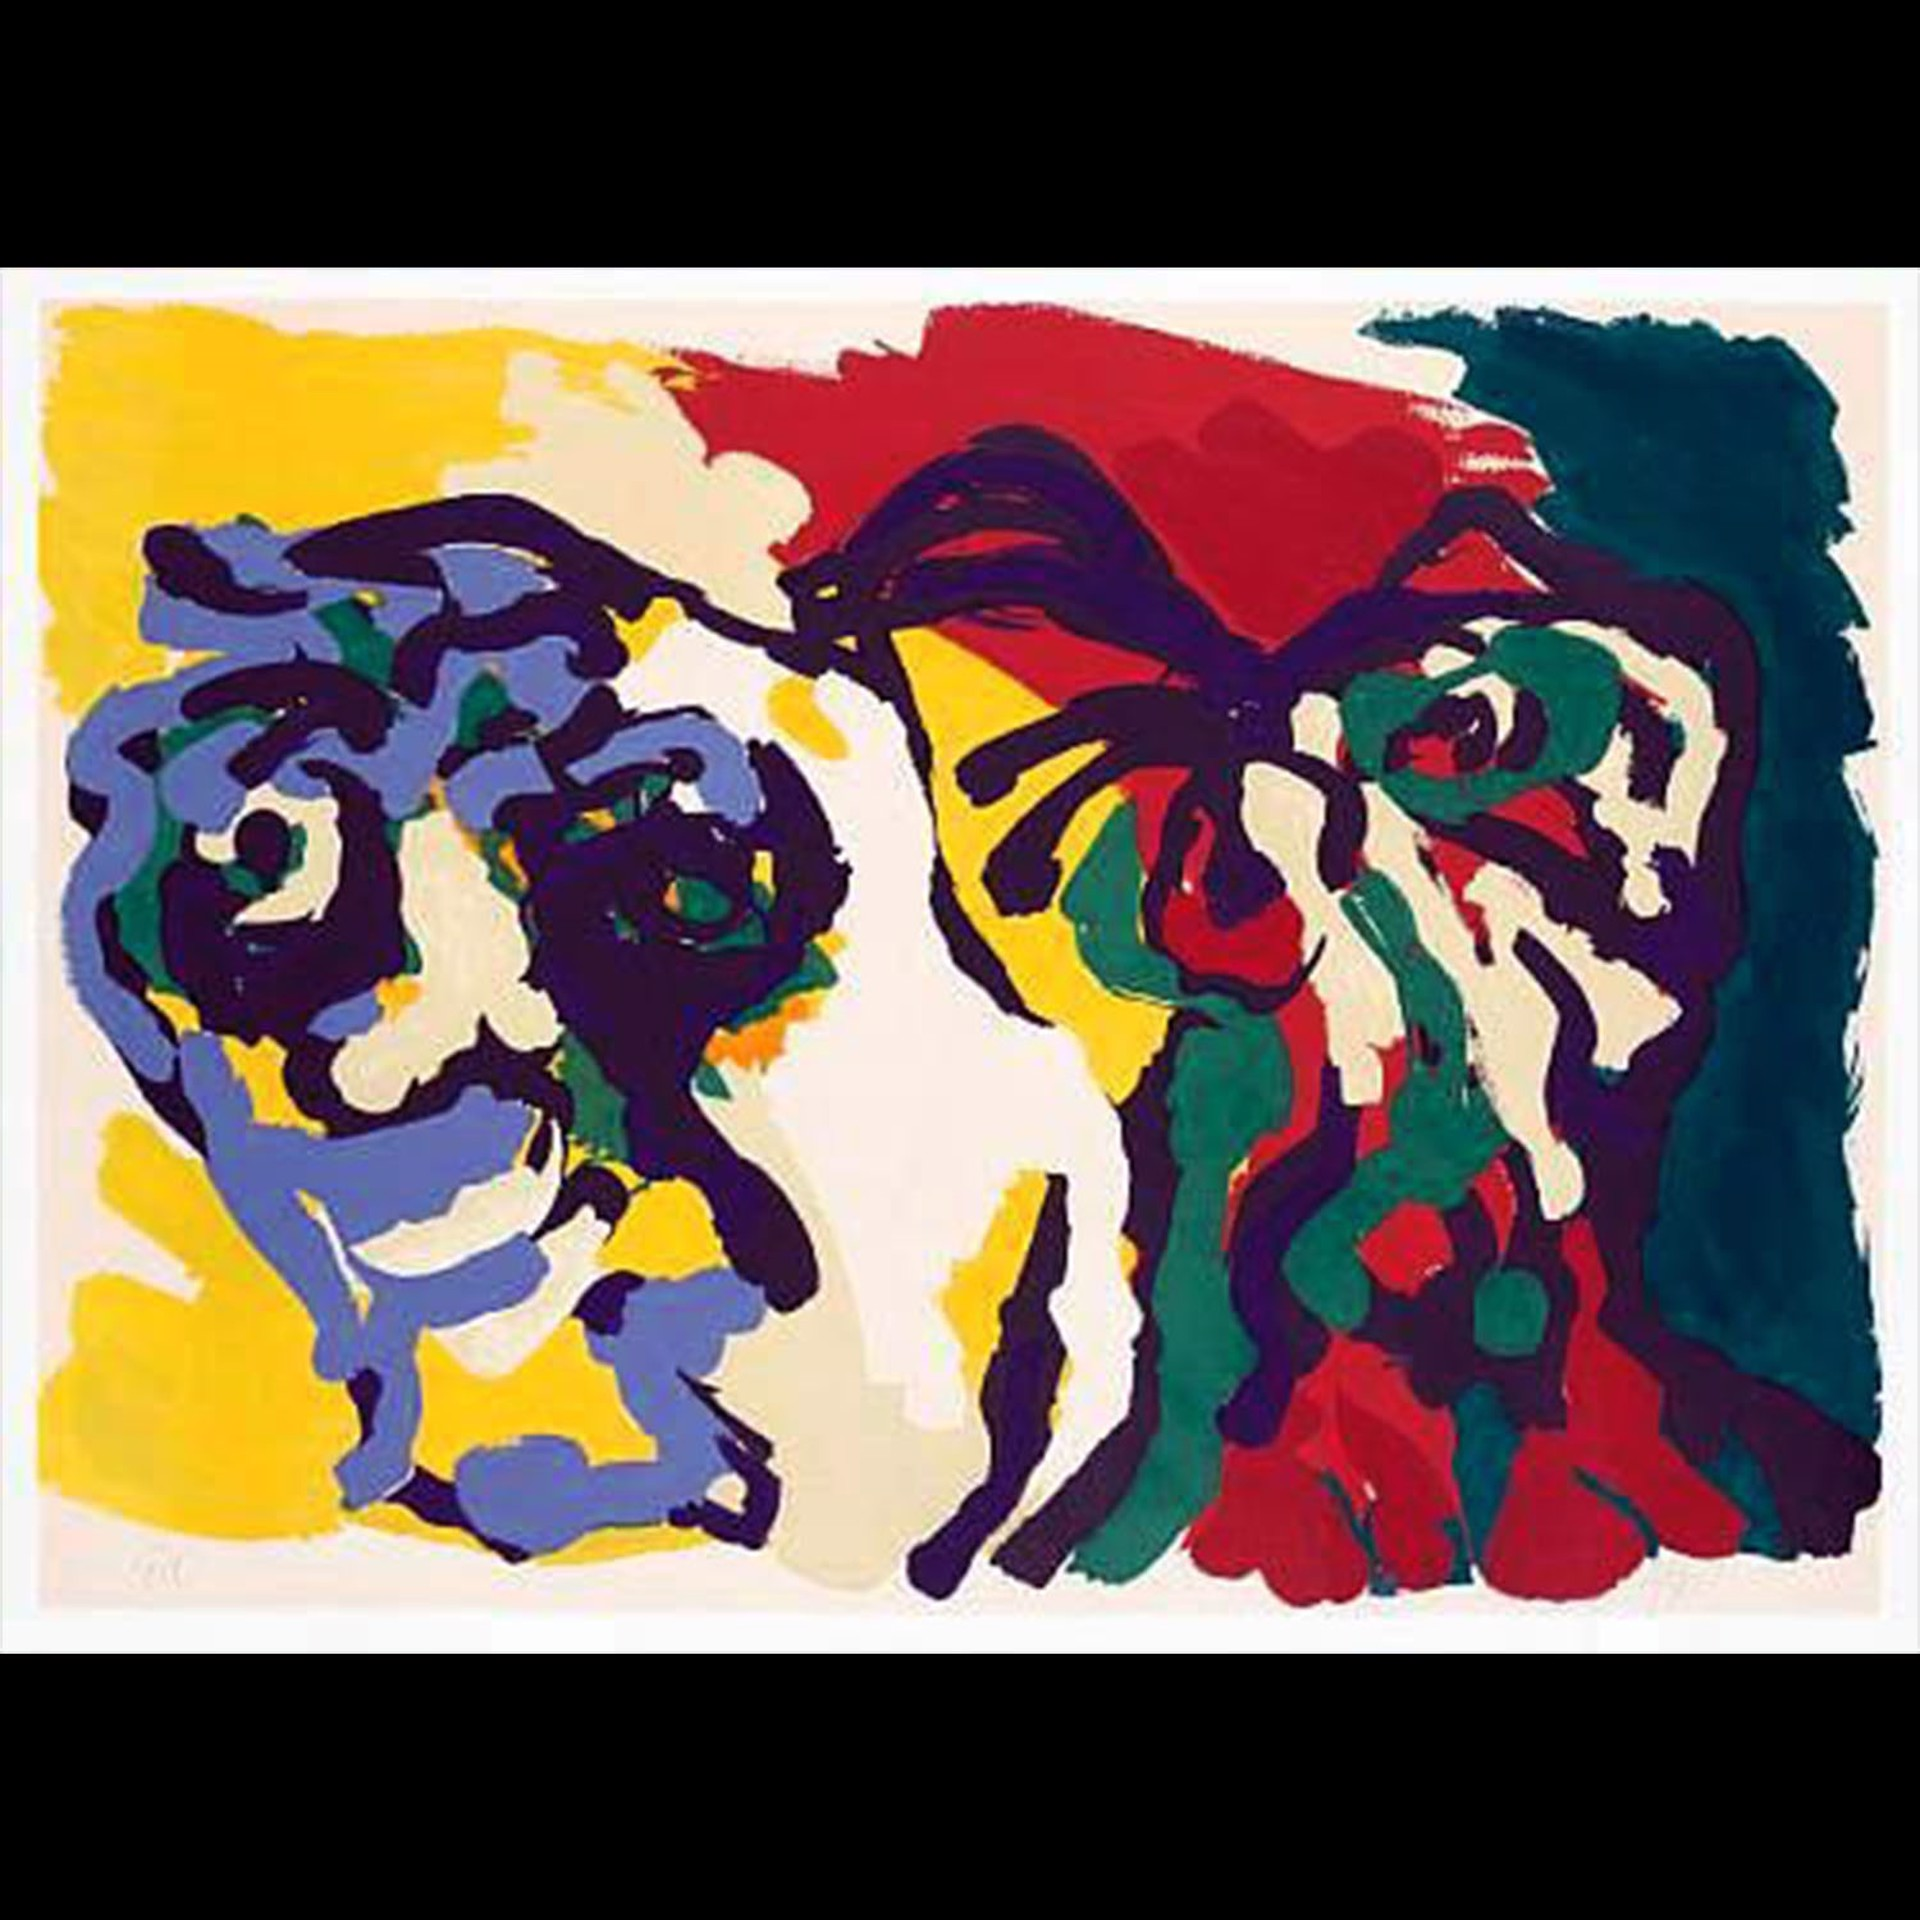 Two Flowering Heads by Karel Appel